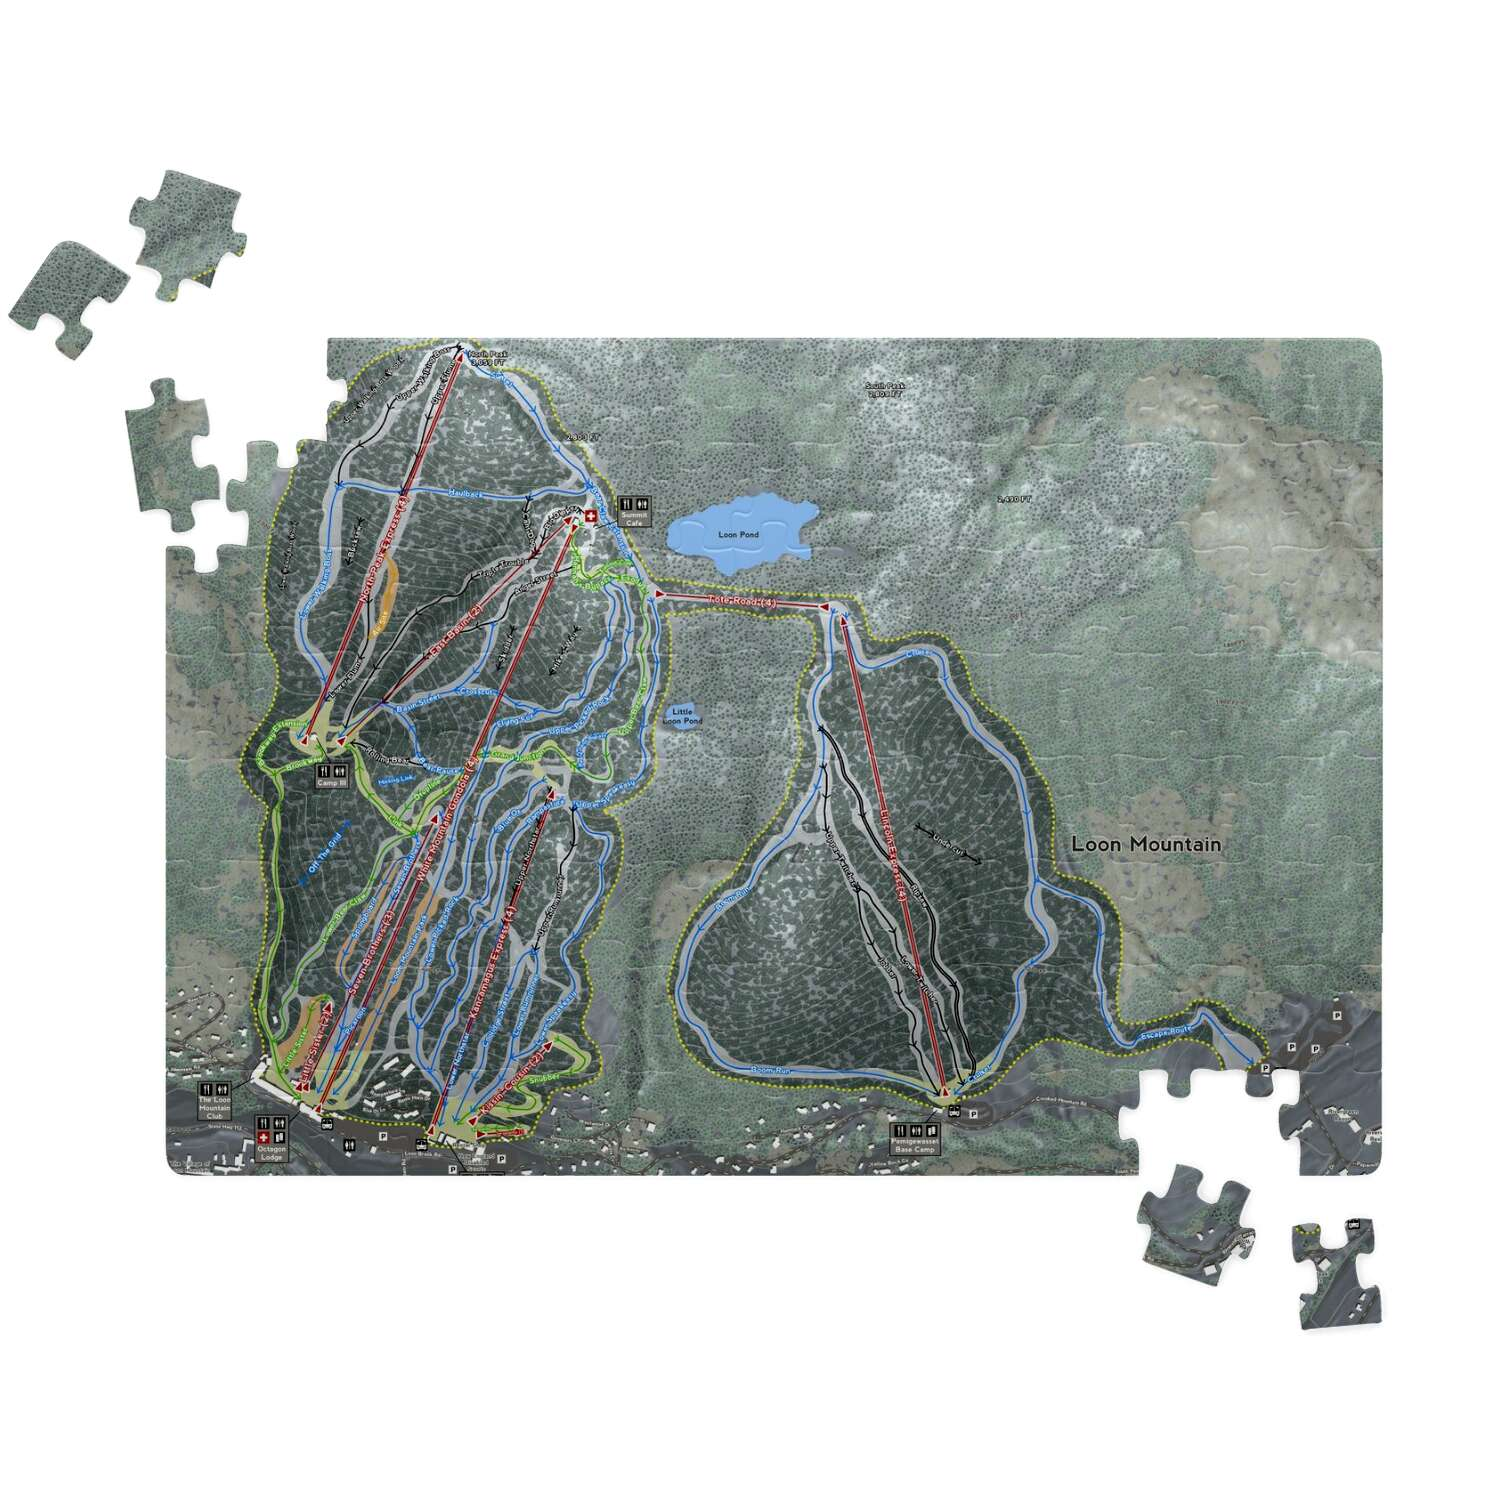 Loon Mountain New Hampshire Ski Resort Map Puzzles